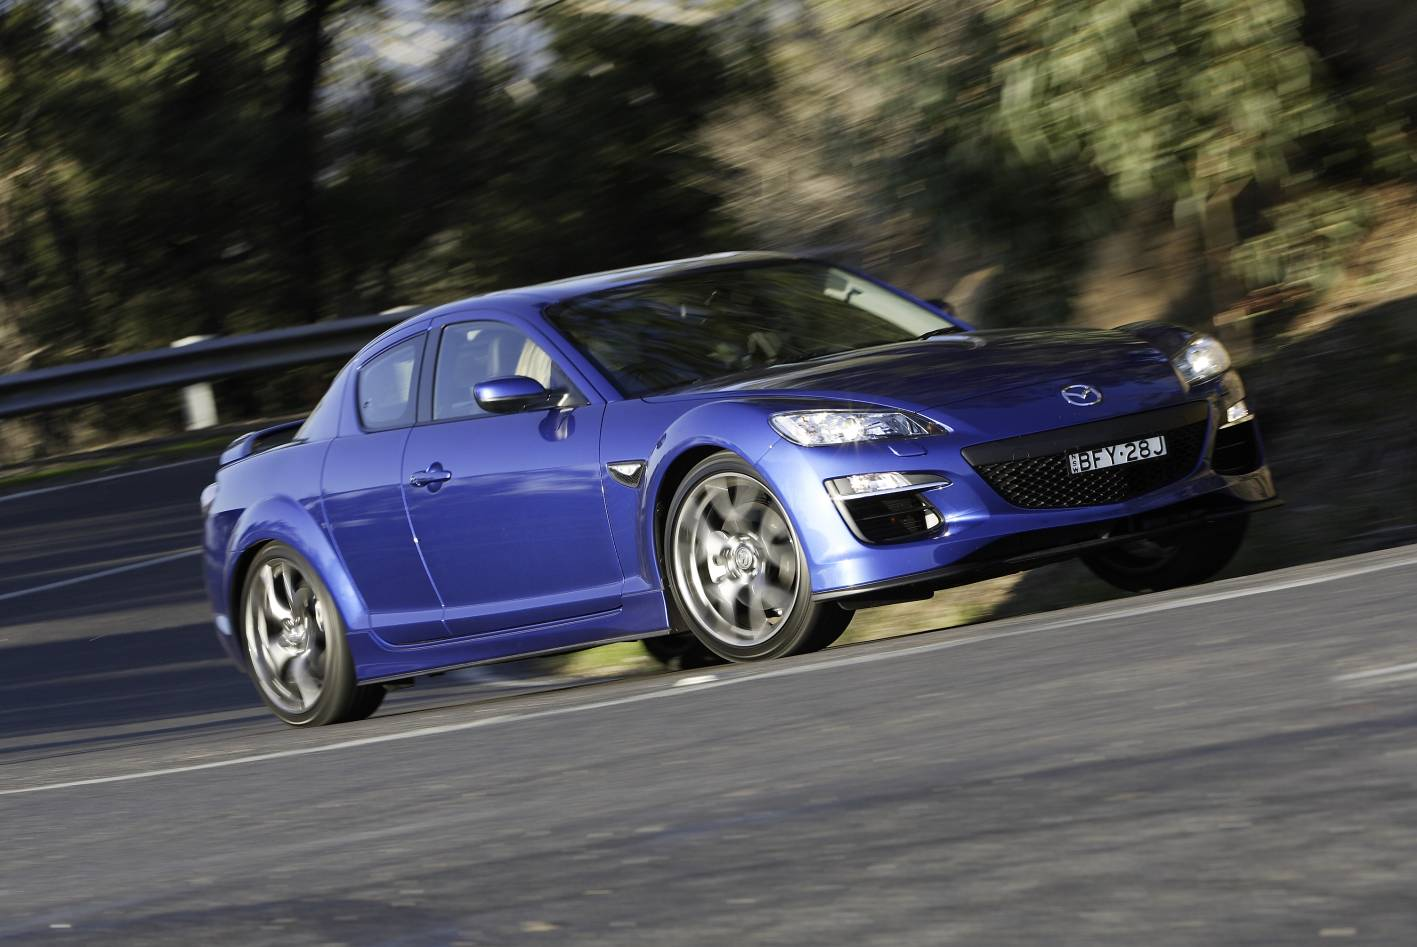 Mazda RX-8 To Be Retired At Year's End, Mazda Australia Says Otherwise